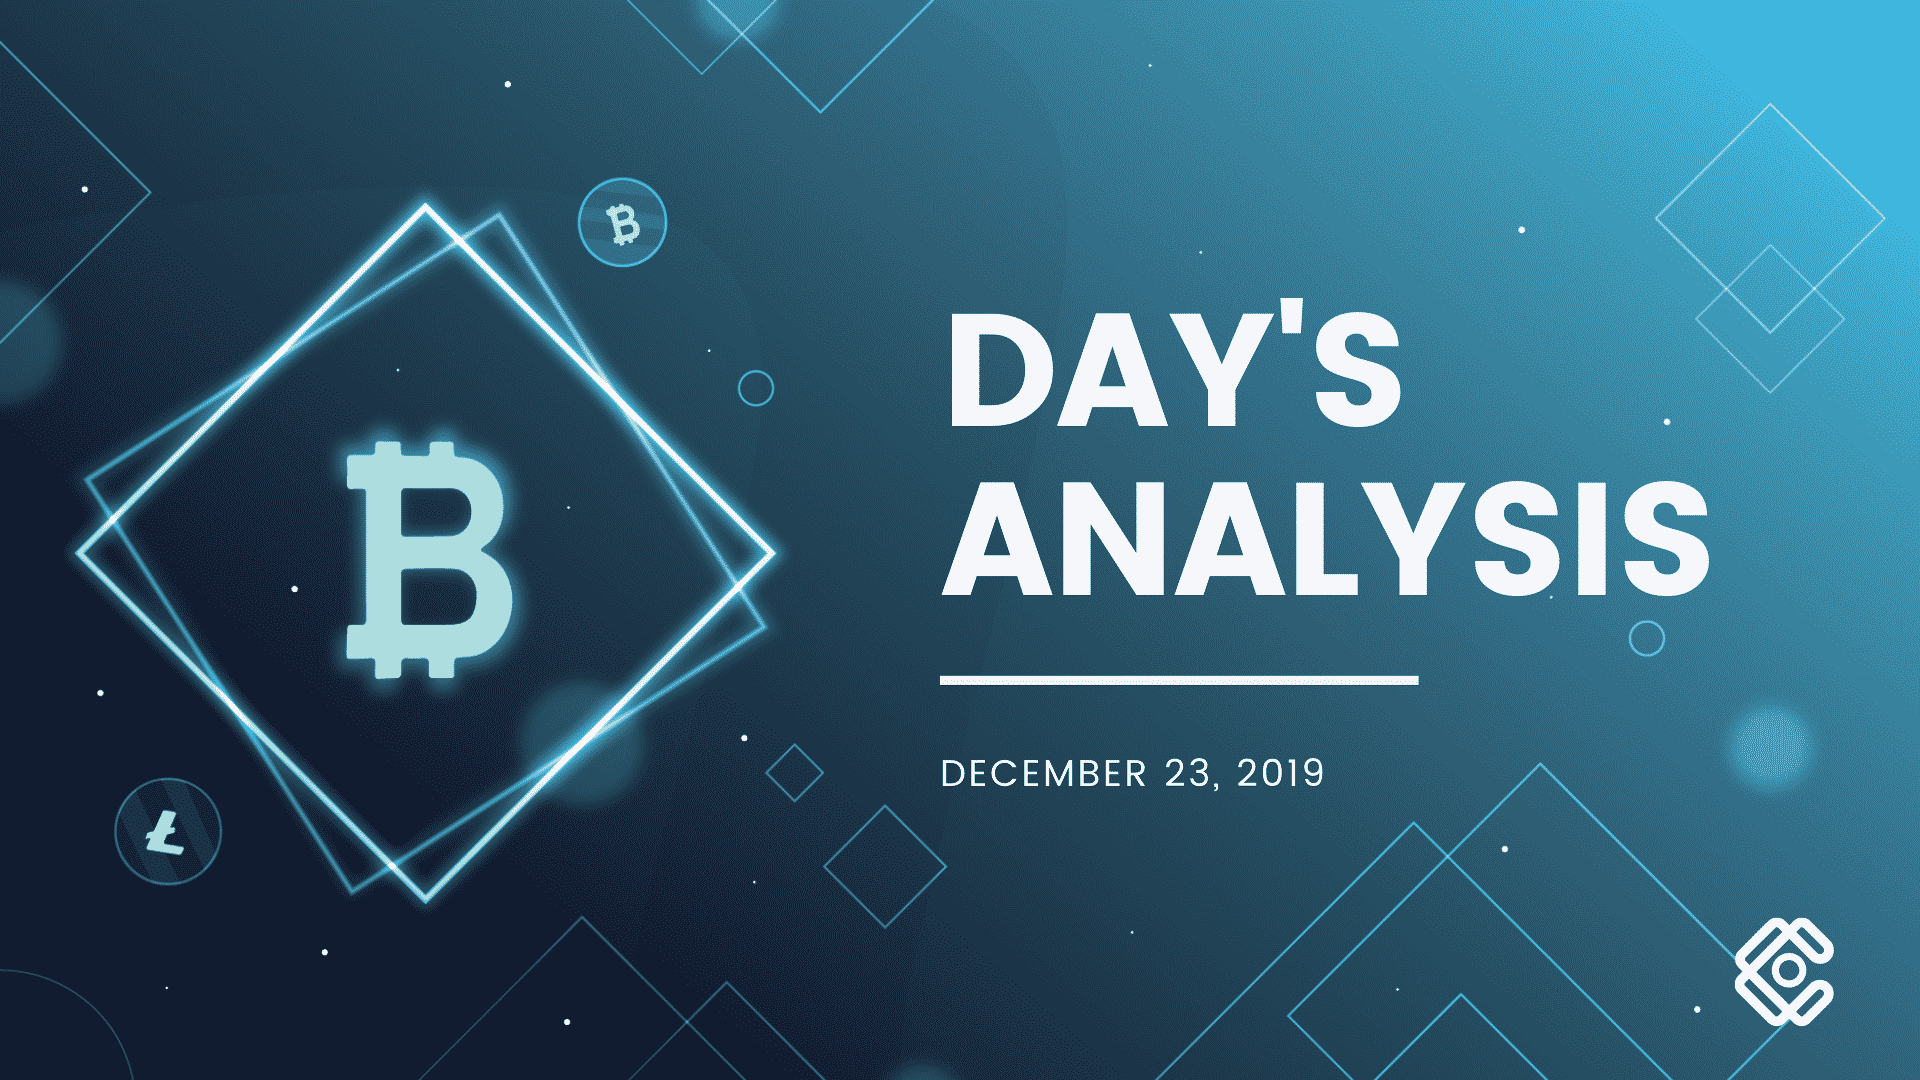 Market Analysis of December 23, 2019